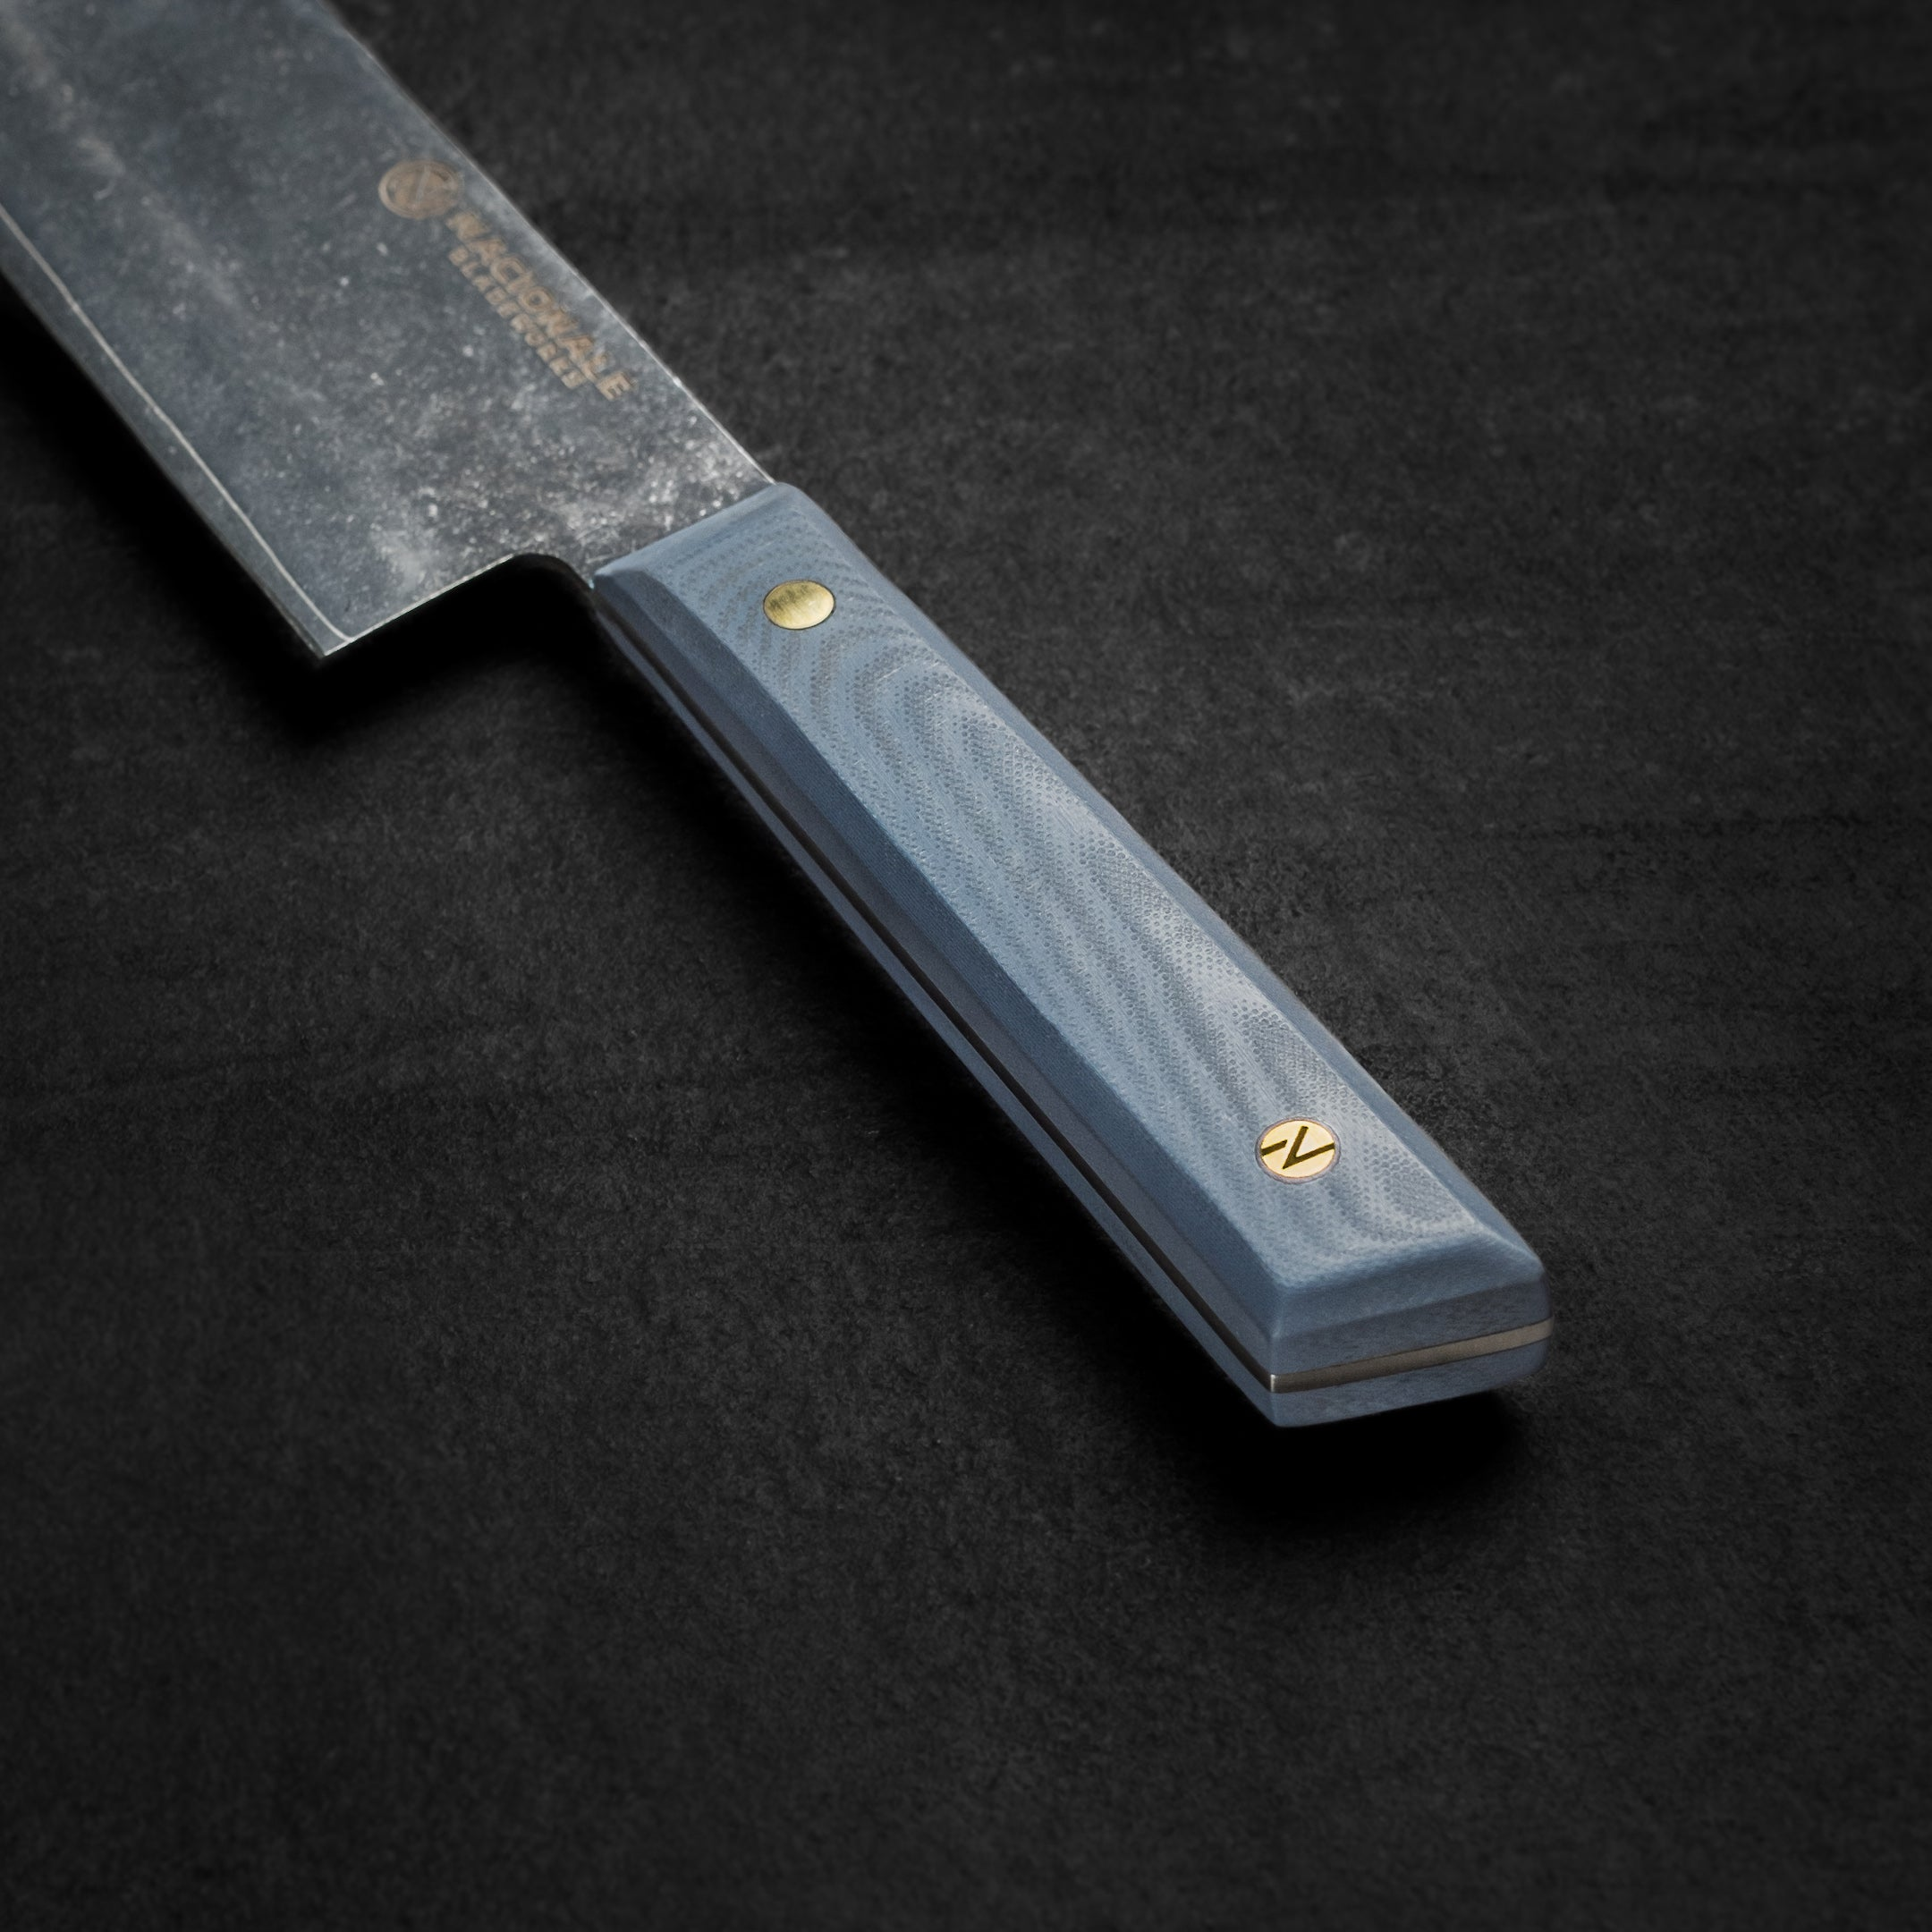 215mm Tall Gyuto. Navy G10 Handle. Full Tang